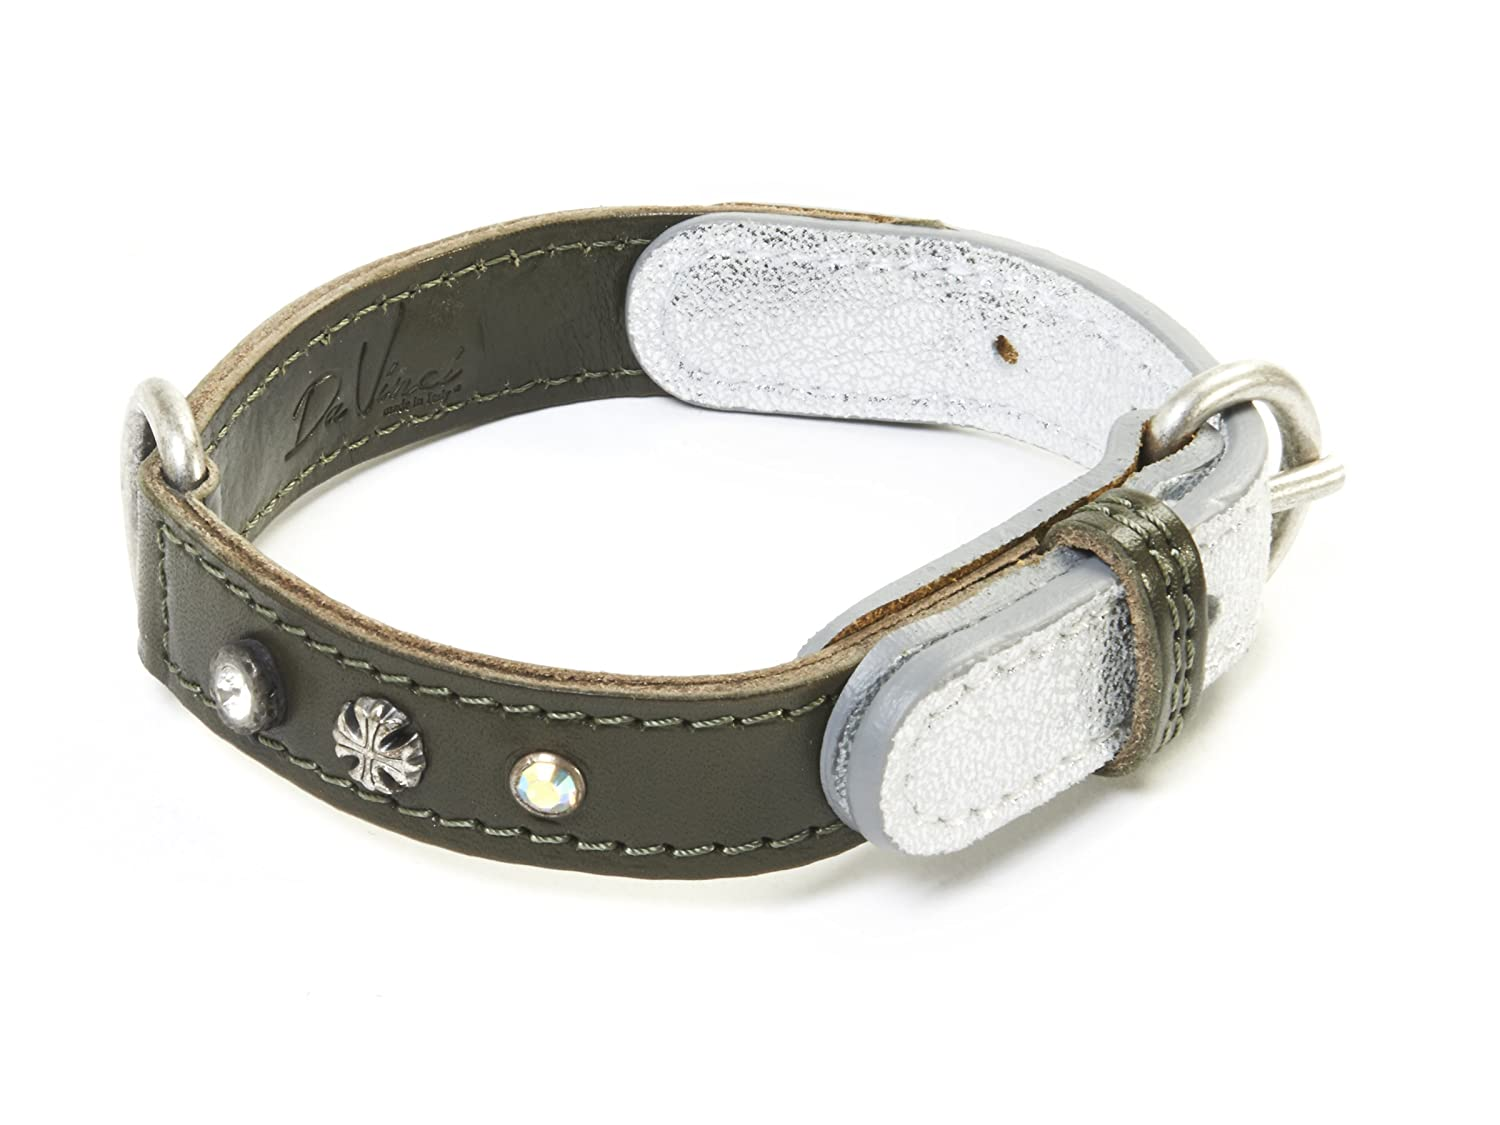 da Vinci Ginevra Collier pour Chien en Cuir avec Clous et Strass, 60 cm, Marron Carbone pet products uk DV3.3.60BR